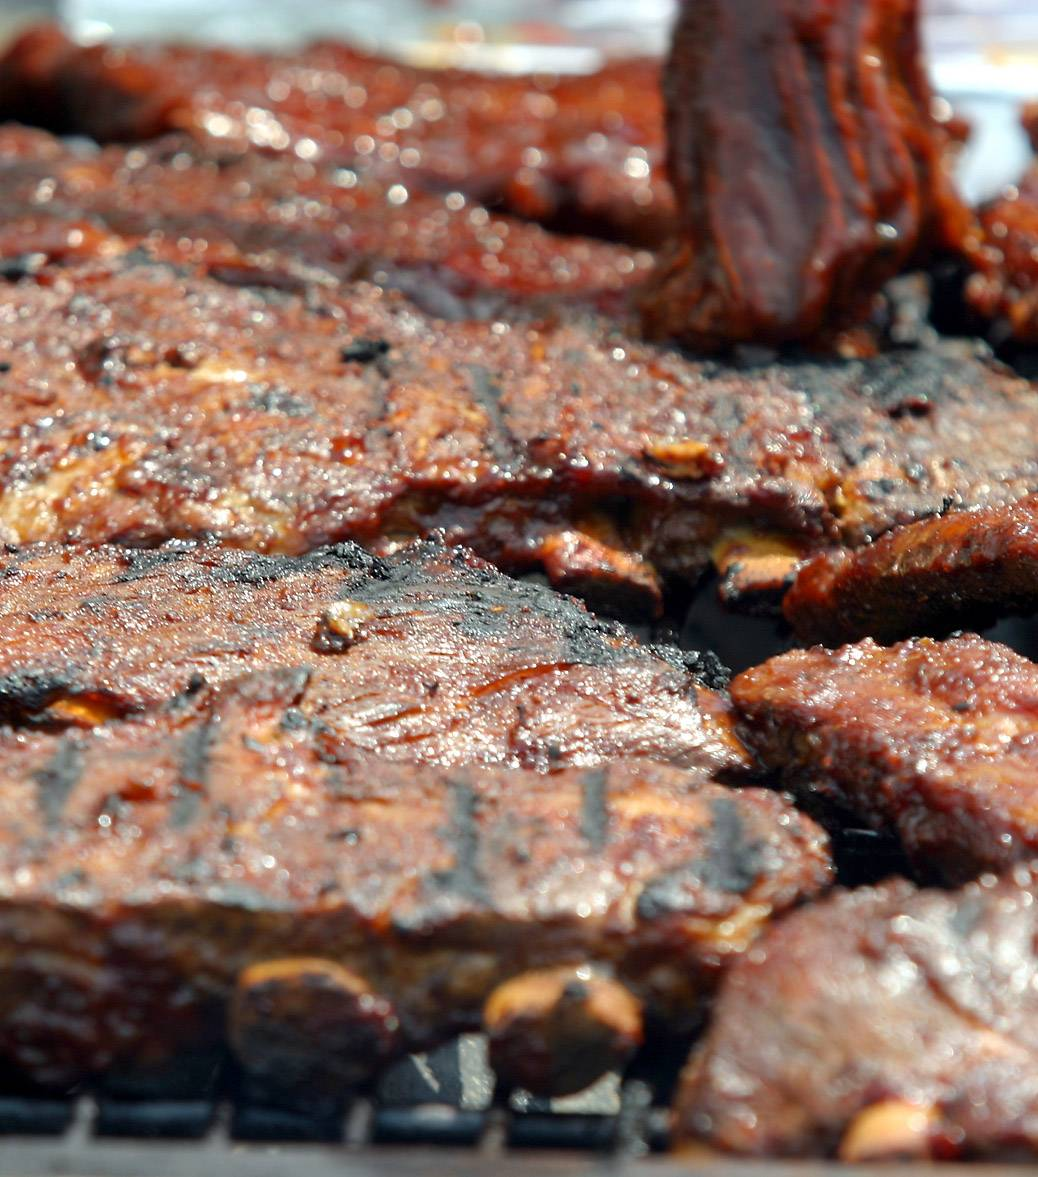 Barbecue ribs will be available from 12 vendors during the 27th annual Ribfest from July 3 to 6 at Knoch Park in Naperville.